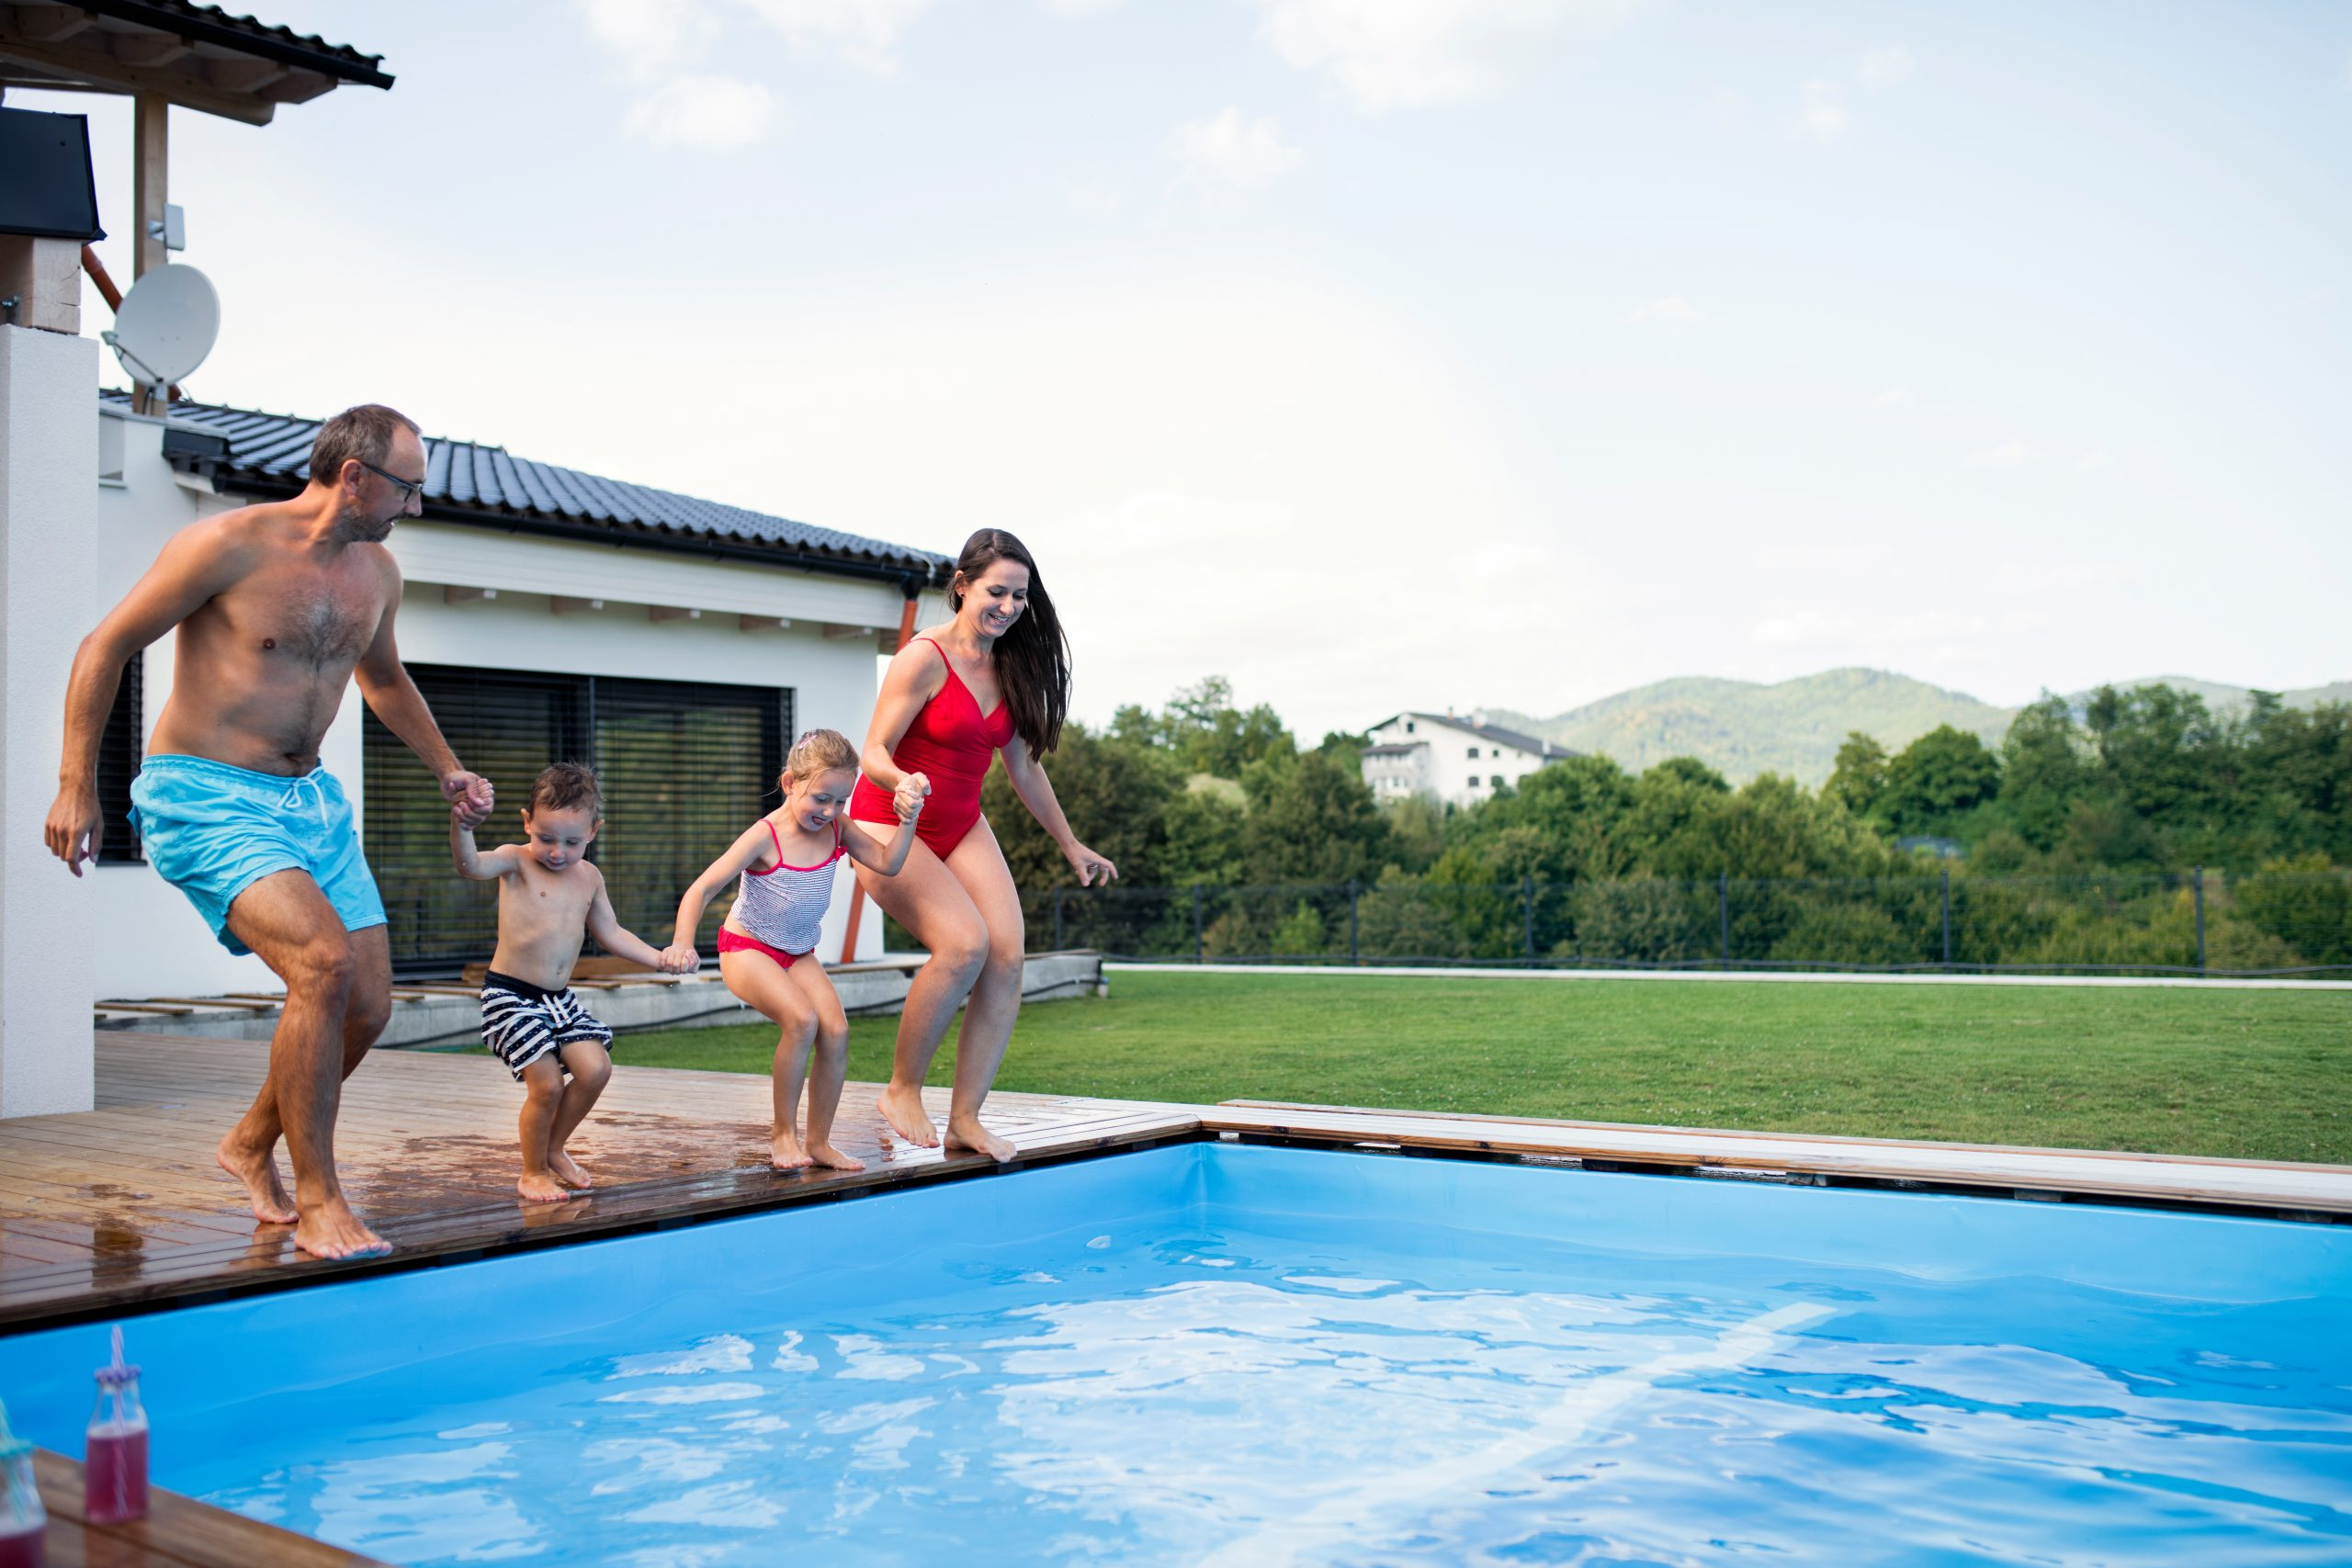 family of 4, holding hands and jumping into a backyard pool